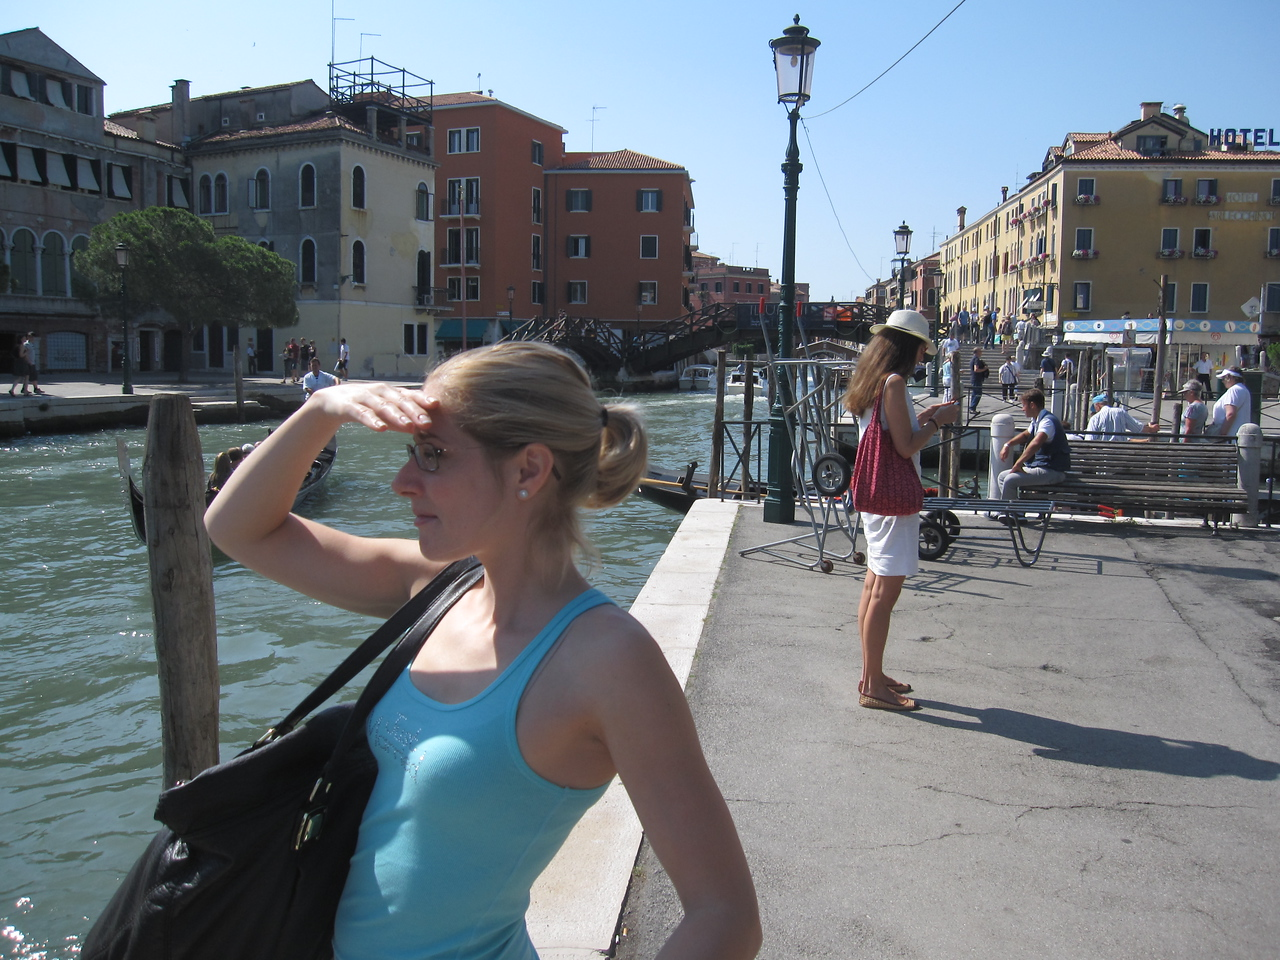 Freshly off the plane from the US and jet-lagged -- feels like 3am. We wait for our water taxi in Venice.